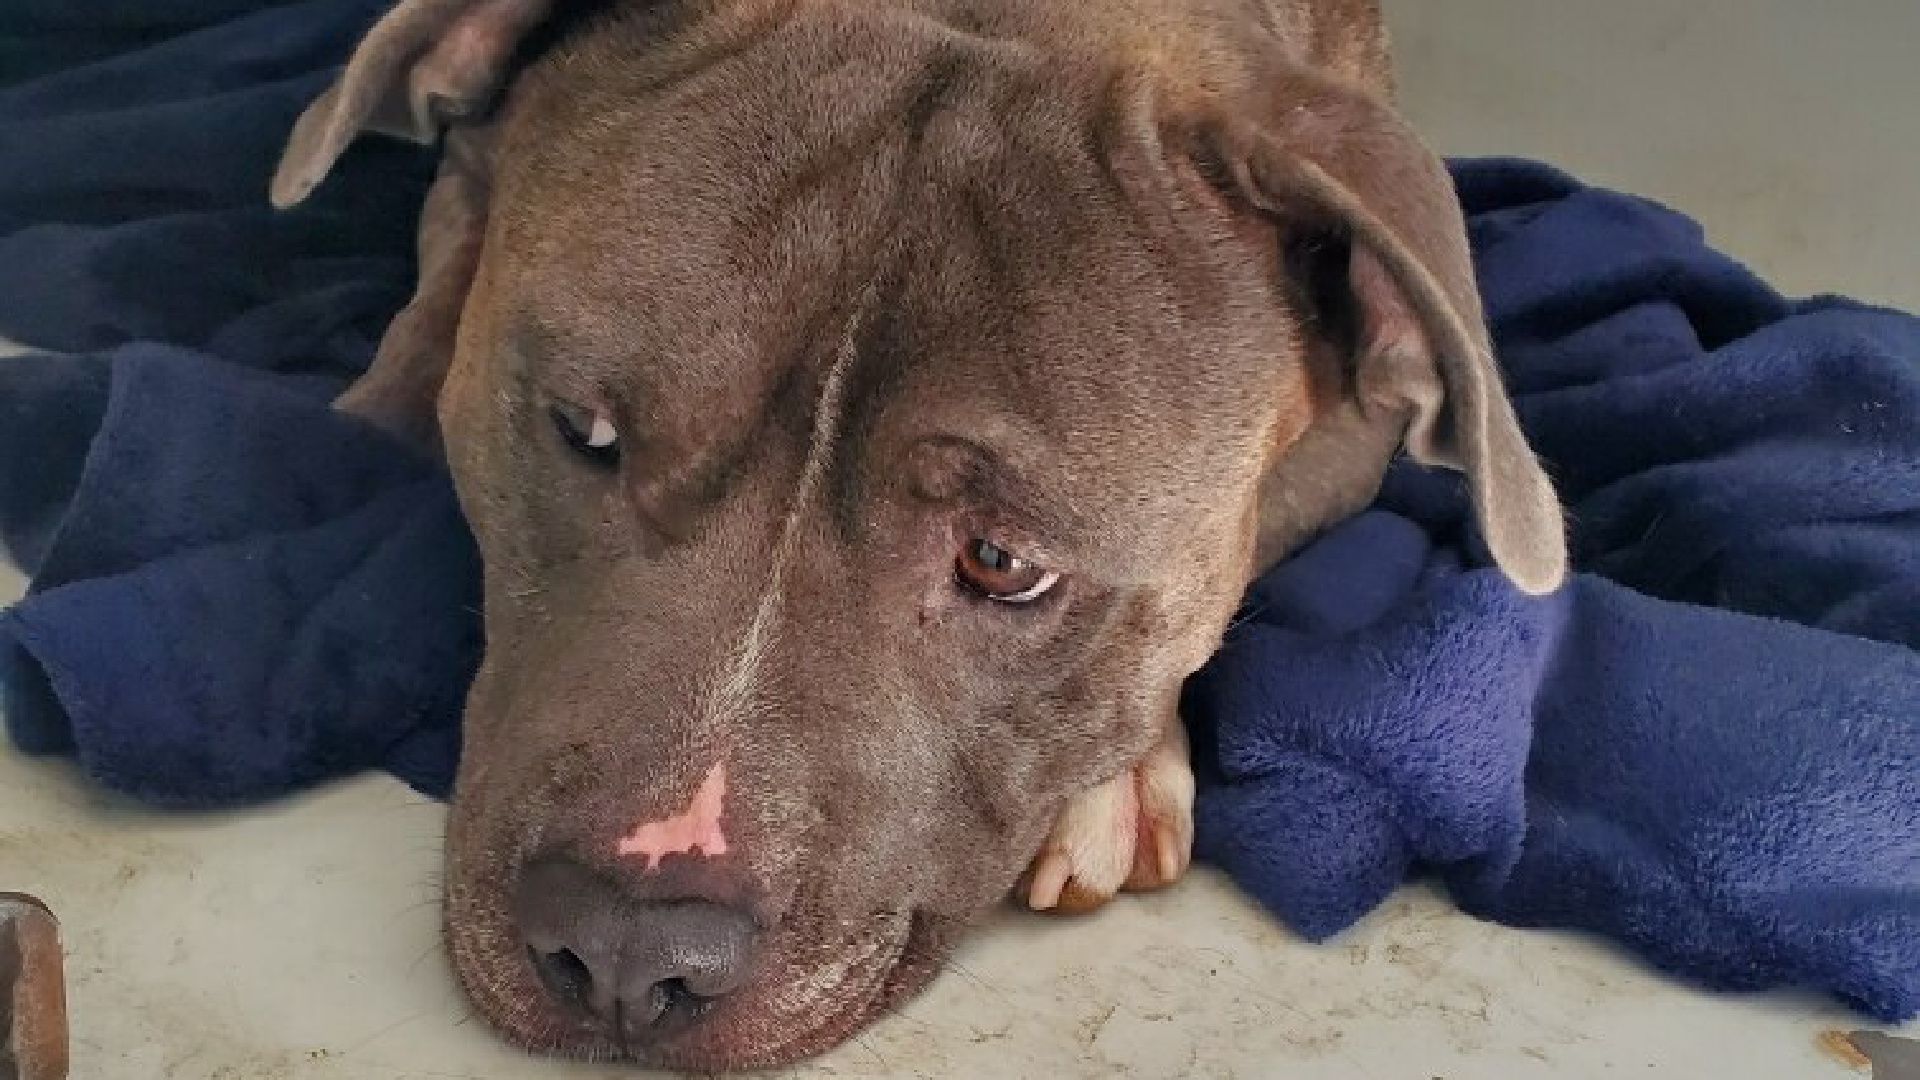 Riverside County Animal Services released this photo of a pit bull that was euthanized after being stabbed in the neck on Oct. 11, 2020.